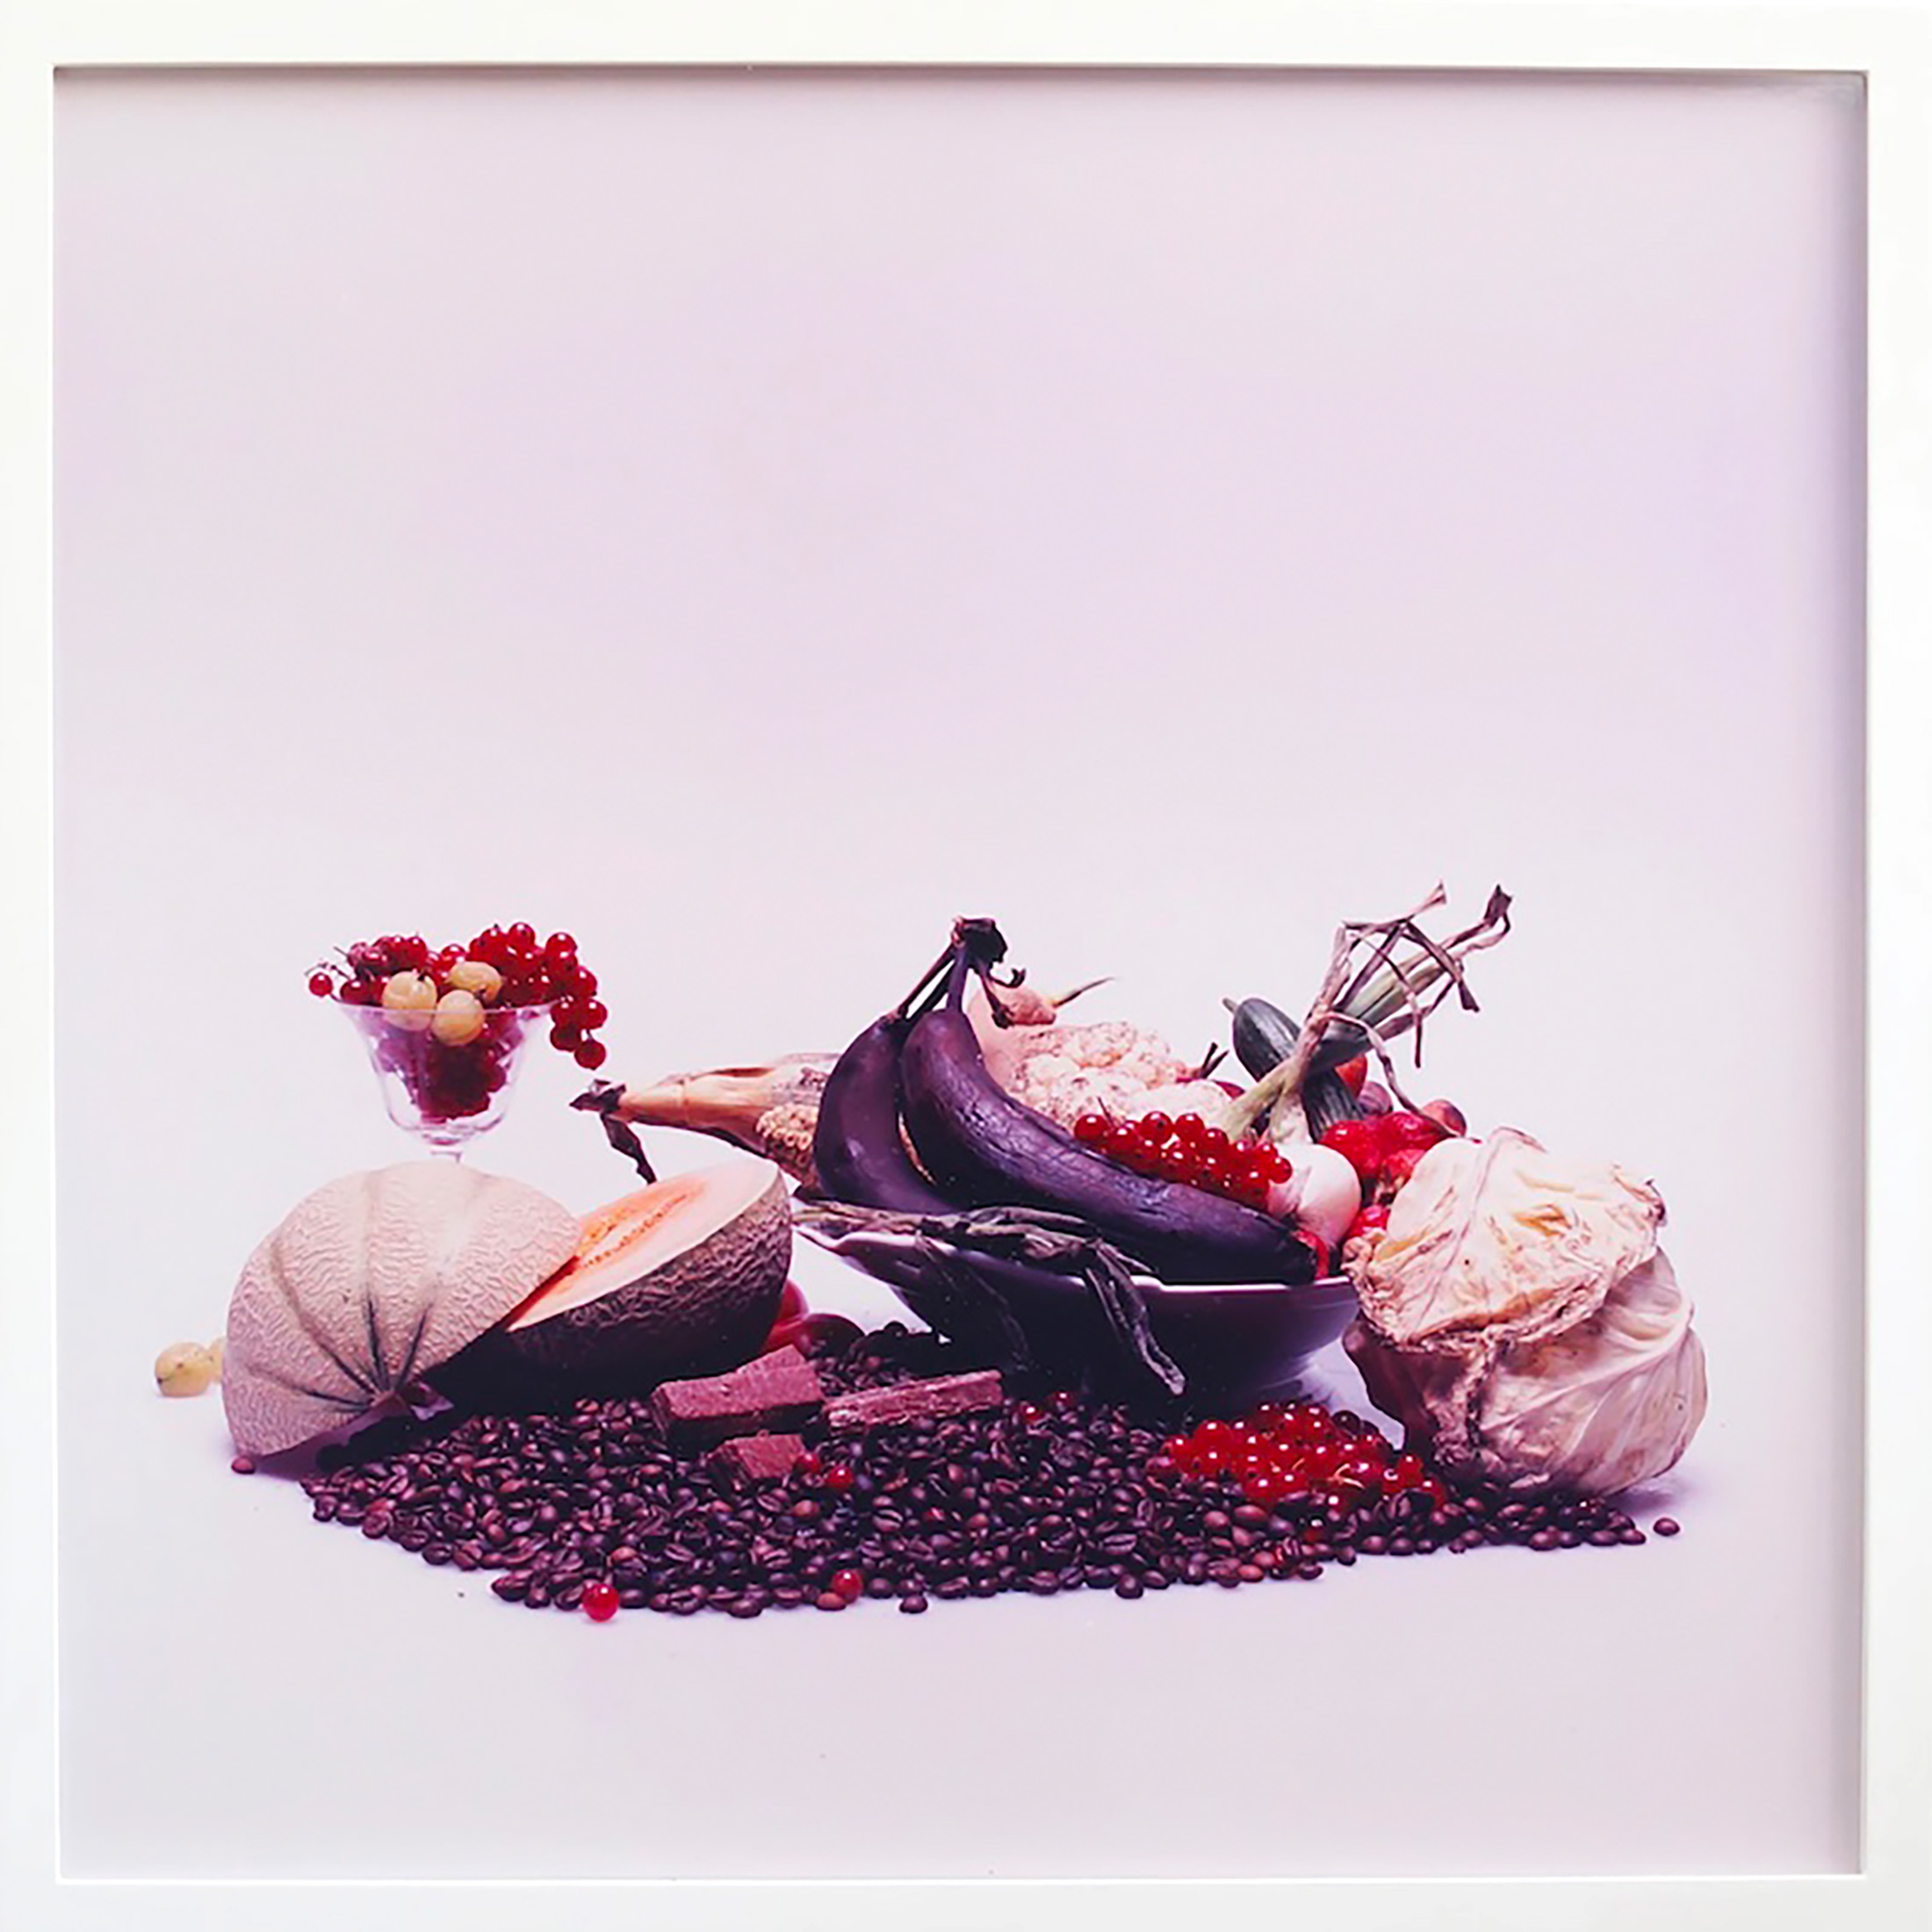 pia mayer, fruit in a bowl, photography, contemporary artist, online viewing room, female artist